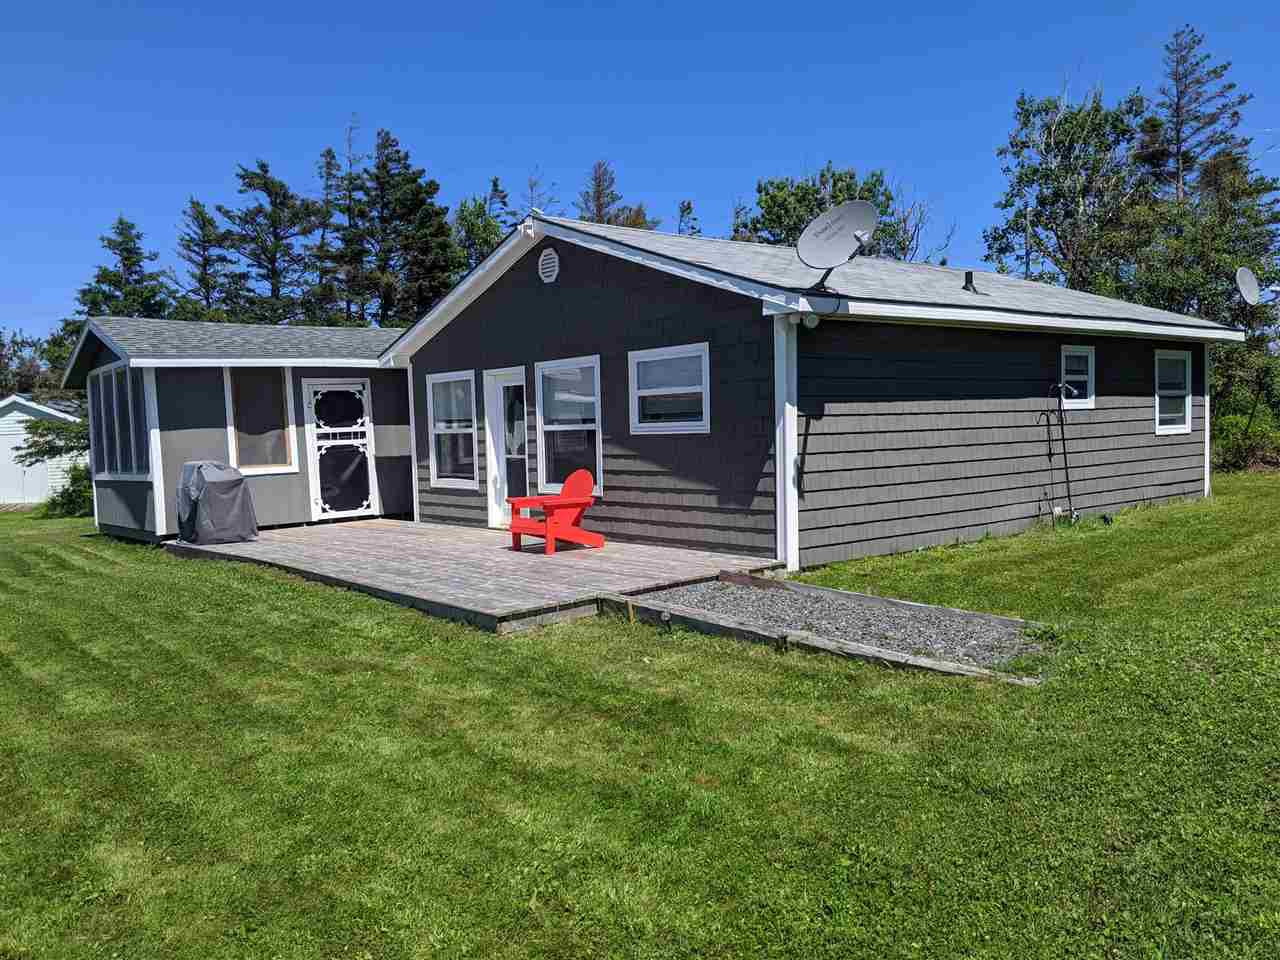 Main Photo: 32 Sunset Drive in Caribou Island: 108-Rural Pictou County Residential for sale (Northern Region)  : MLS®# 202013720